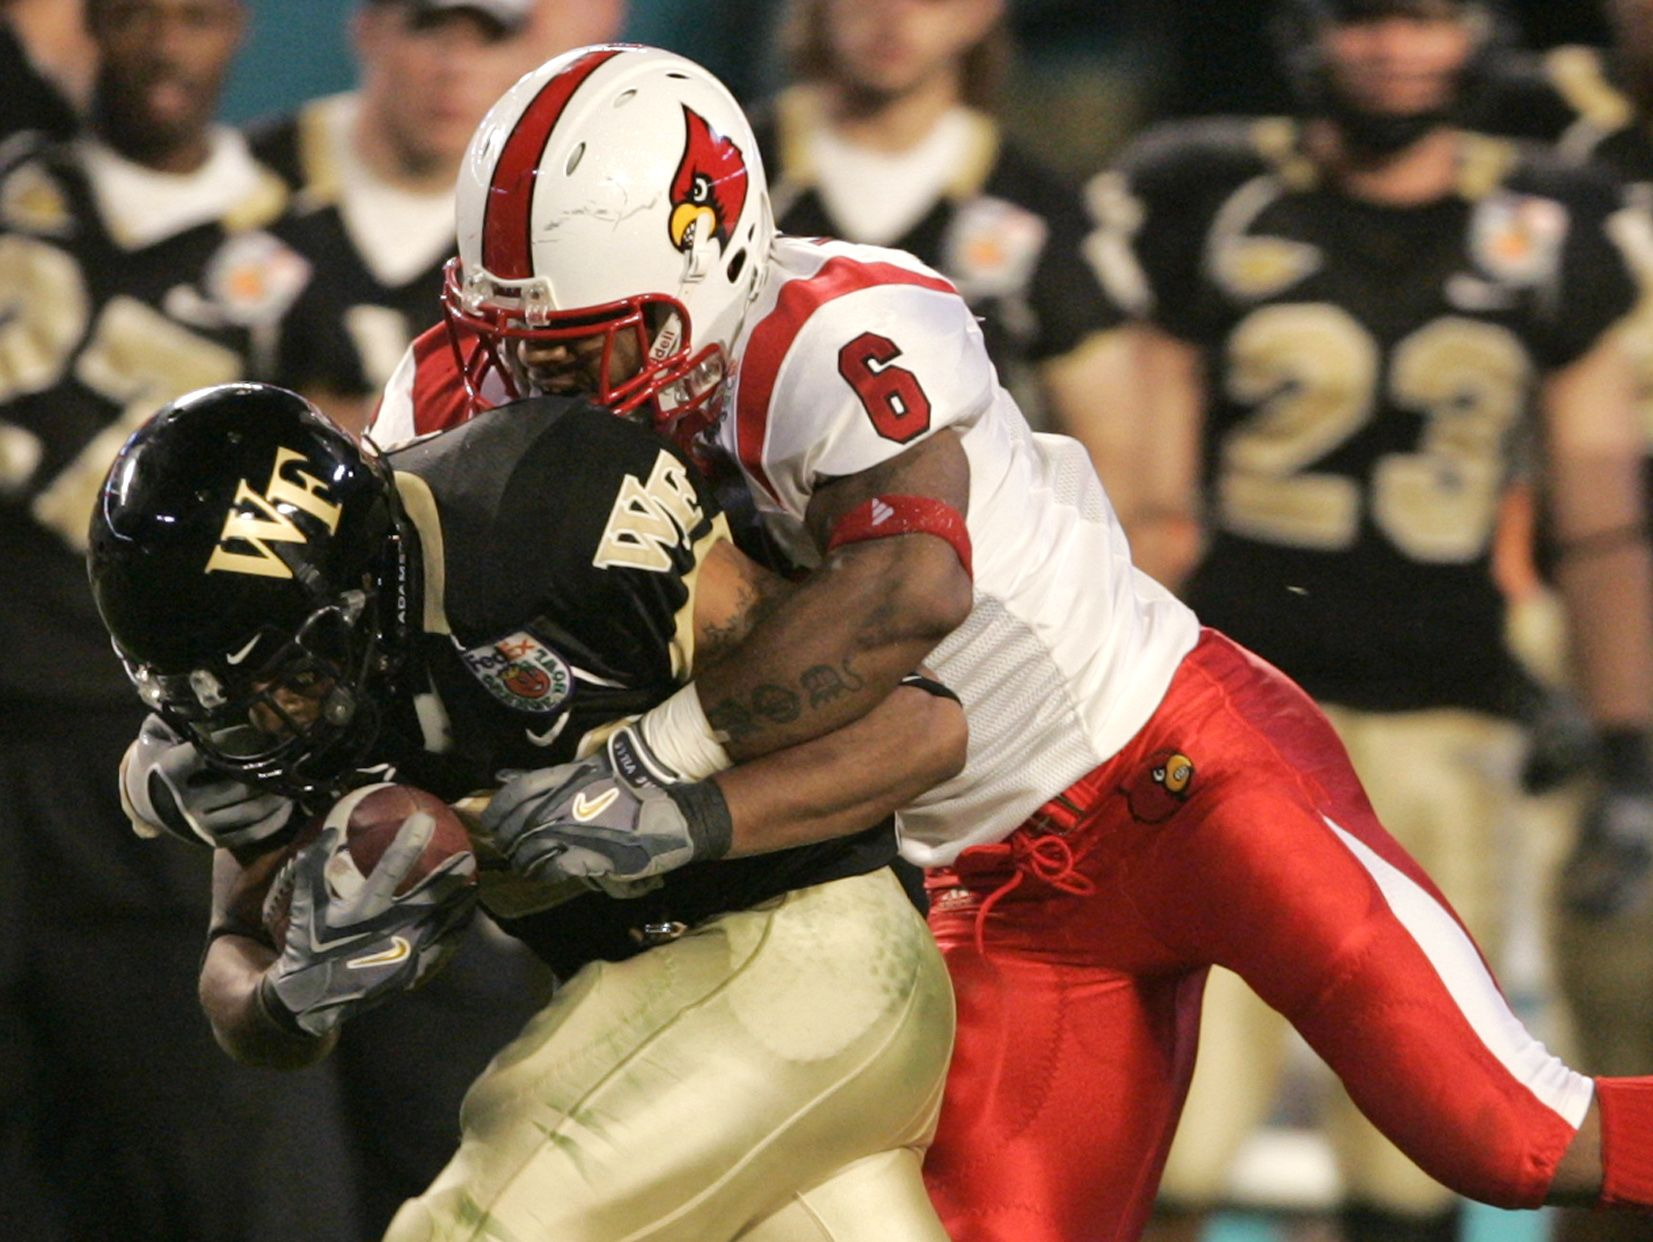 Louisville's Preston Smith (6) brings down Wake Forest running back Kenneth Moore in the third quarter of the Orange Bowl football game Tuesday, Jan. 2, 2007, in Miami. (AP Photo/Lynne Sladky)